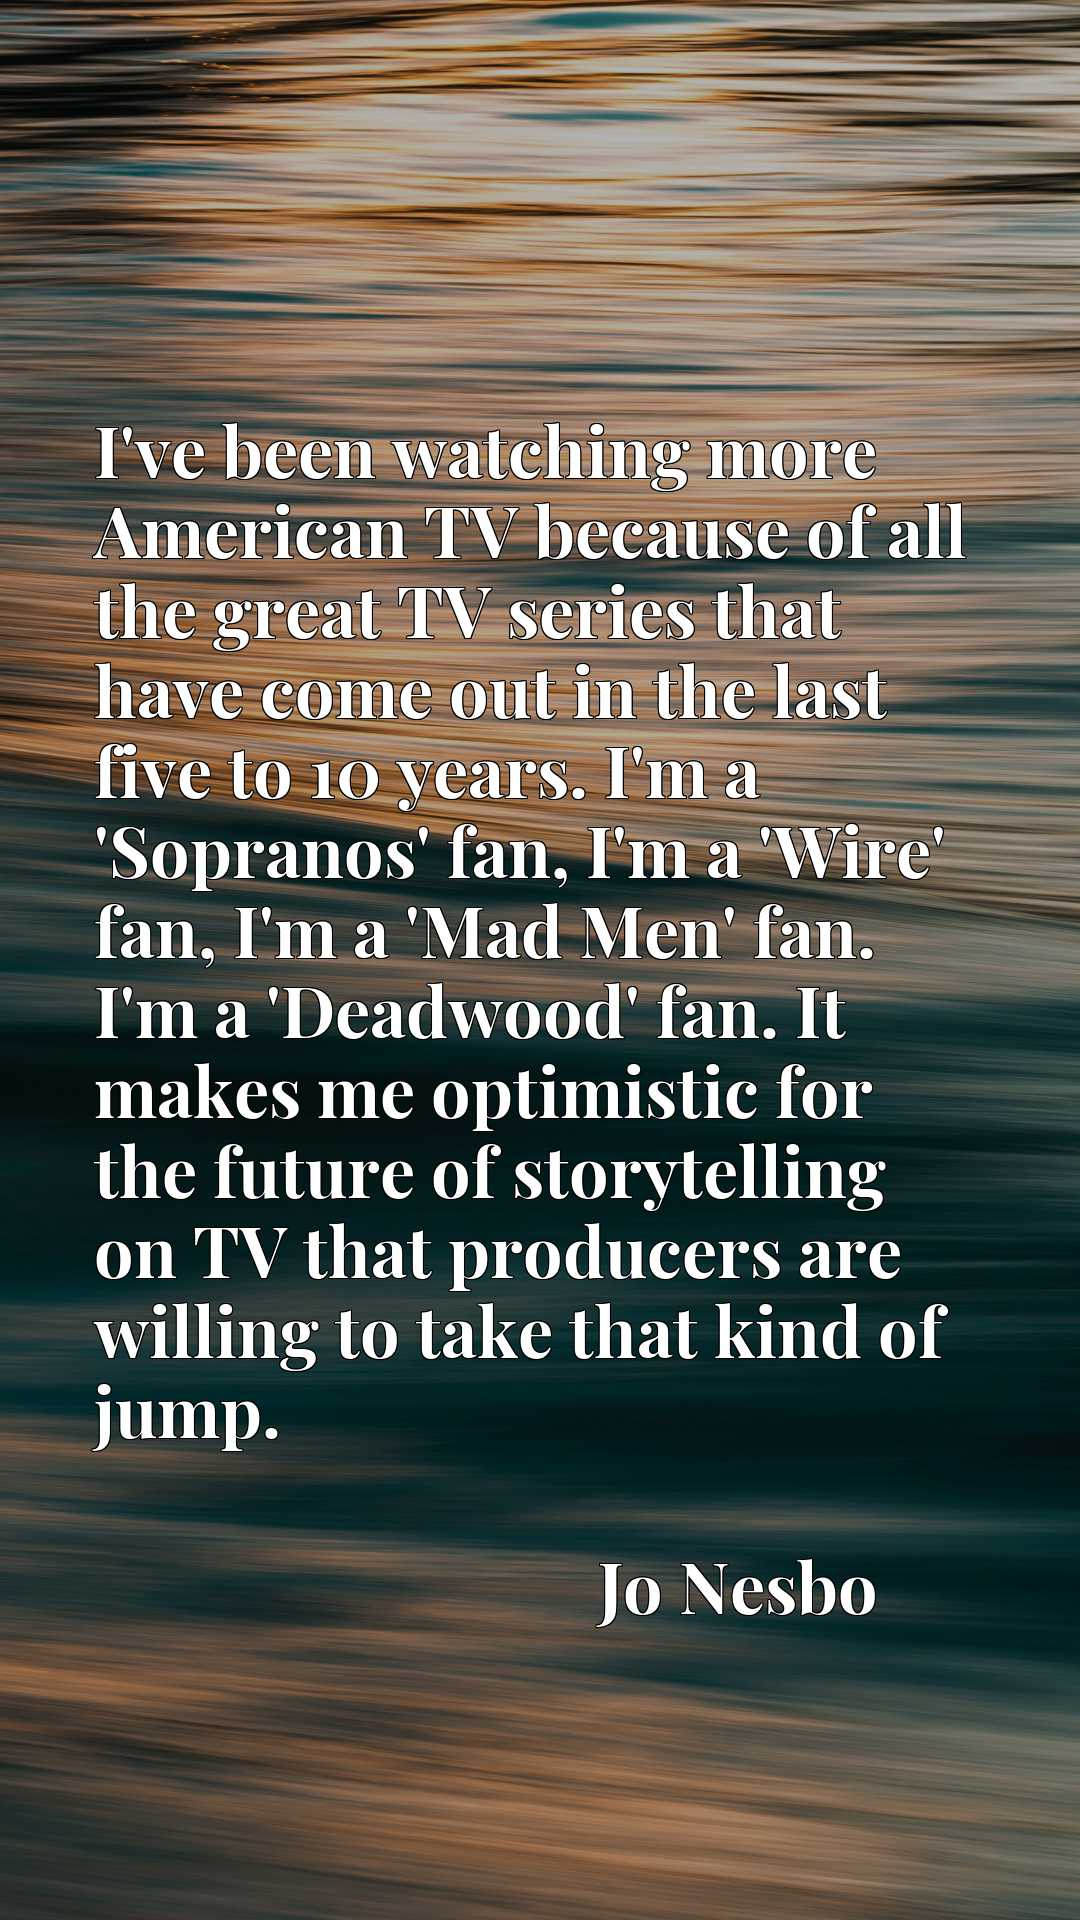 I've been watching more American TV because of all the great TV series that have come out in the last five to 10 years. I'm a 'Sopranos' fan, I'm a 'Wire' fan, I'm a 'Mad Men' fan. I'm a 'Deadwood' fan. It makes me optimistic for the future of storytelling on TV that producers are willing to take that kind of jump.